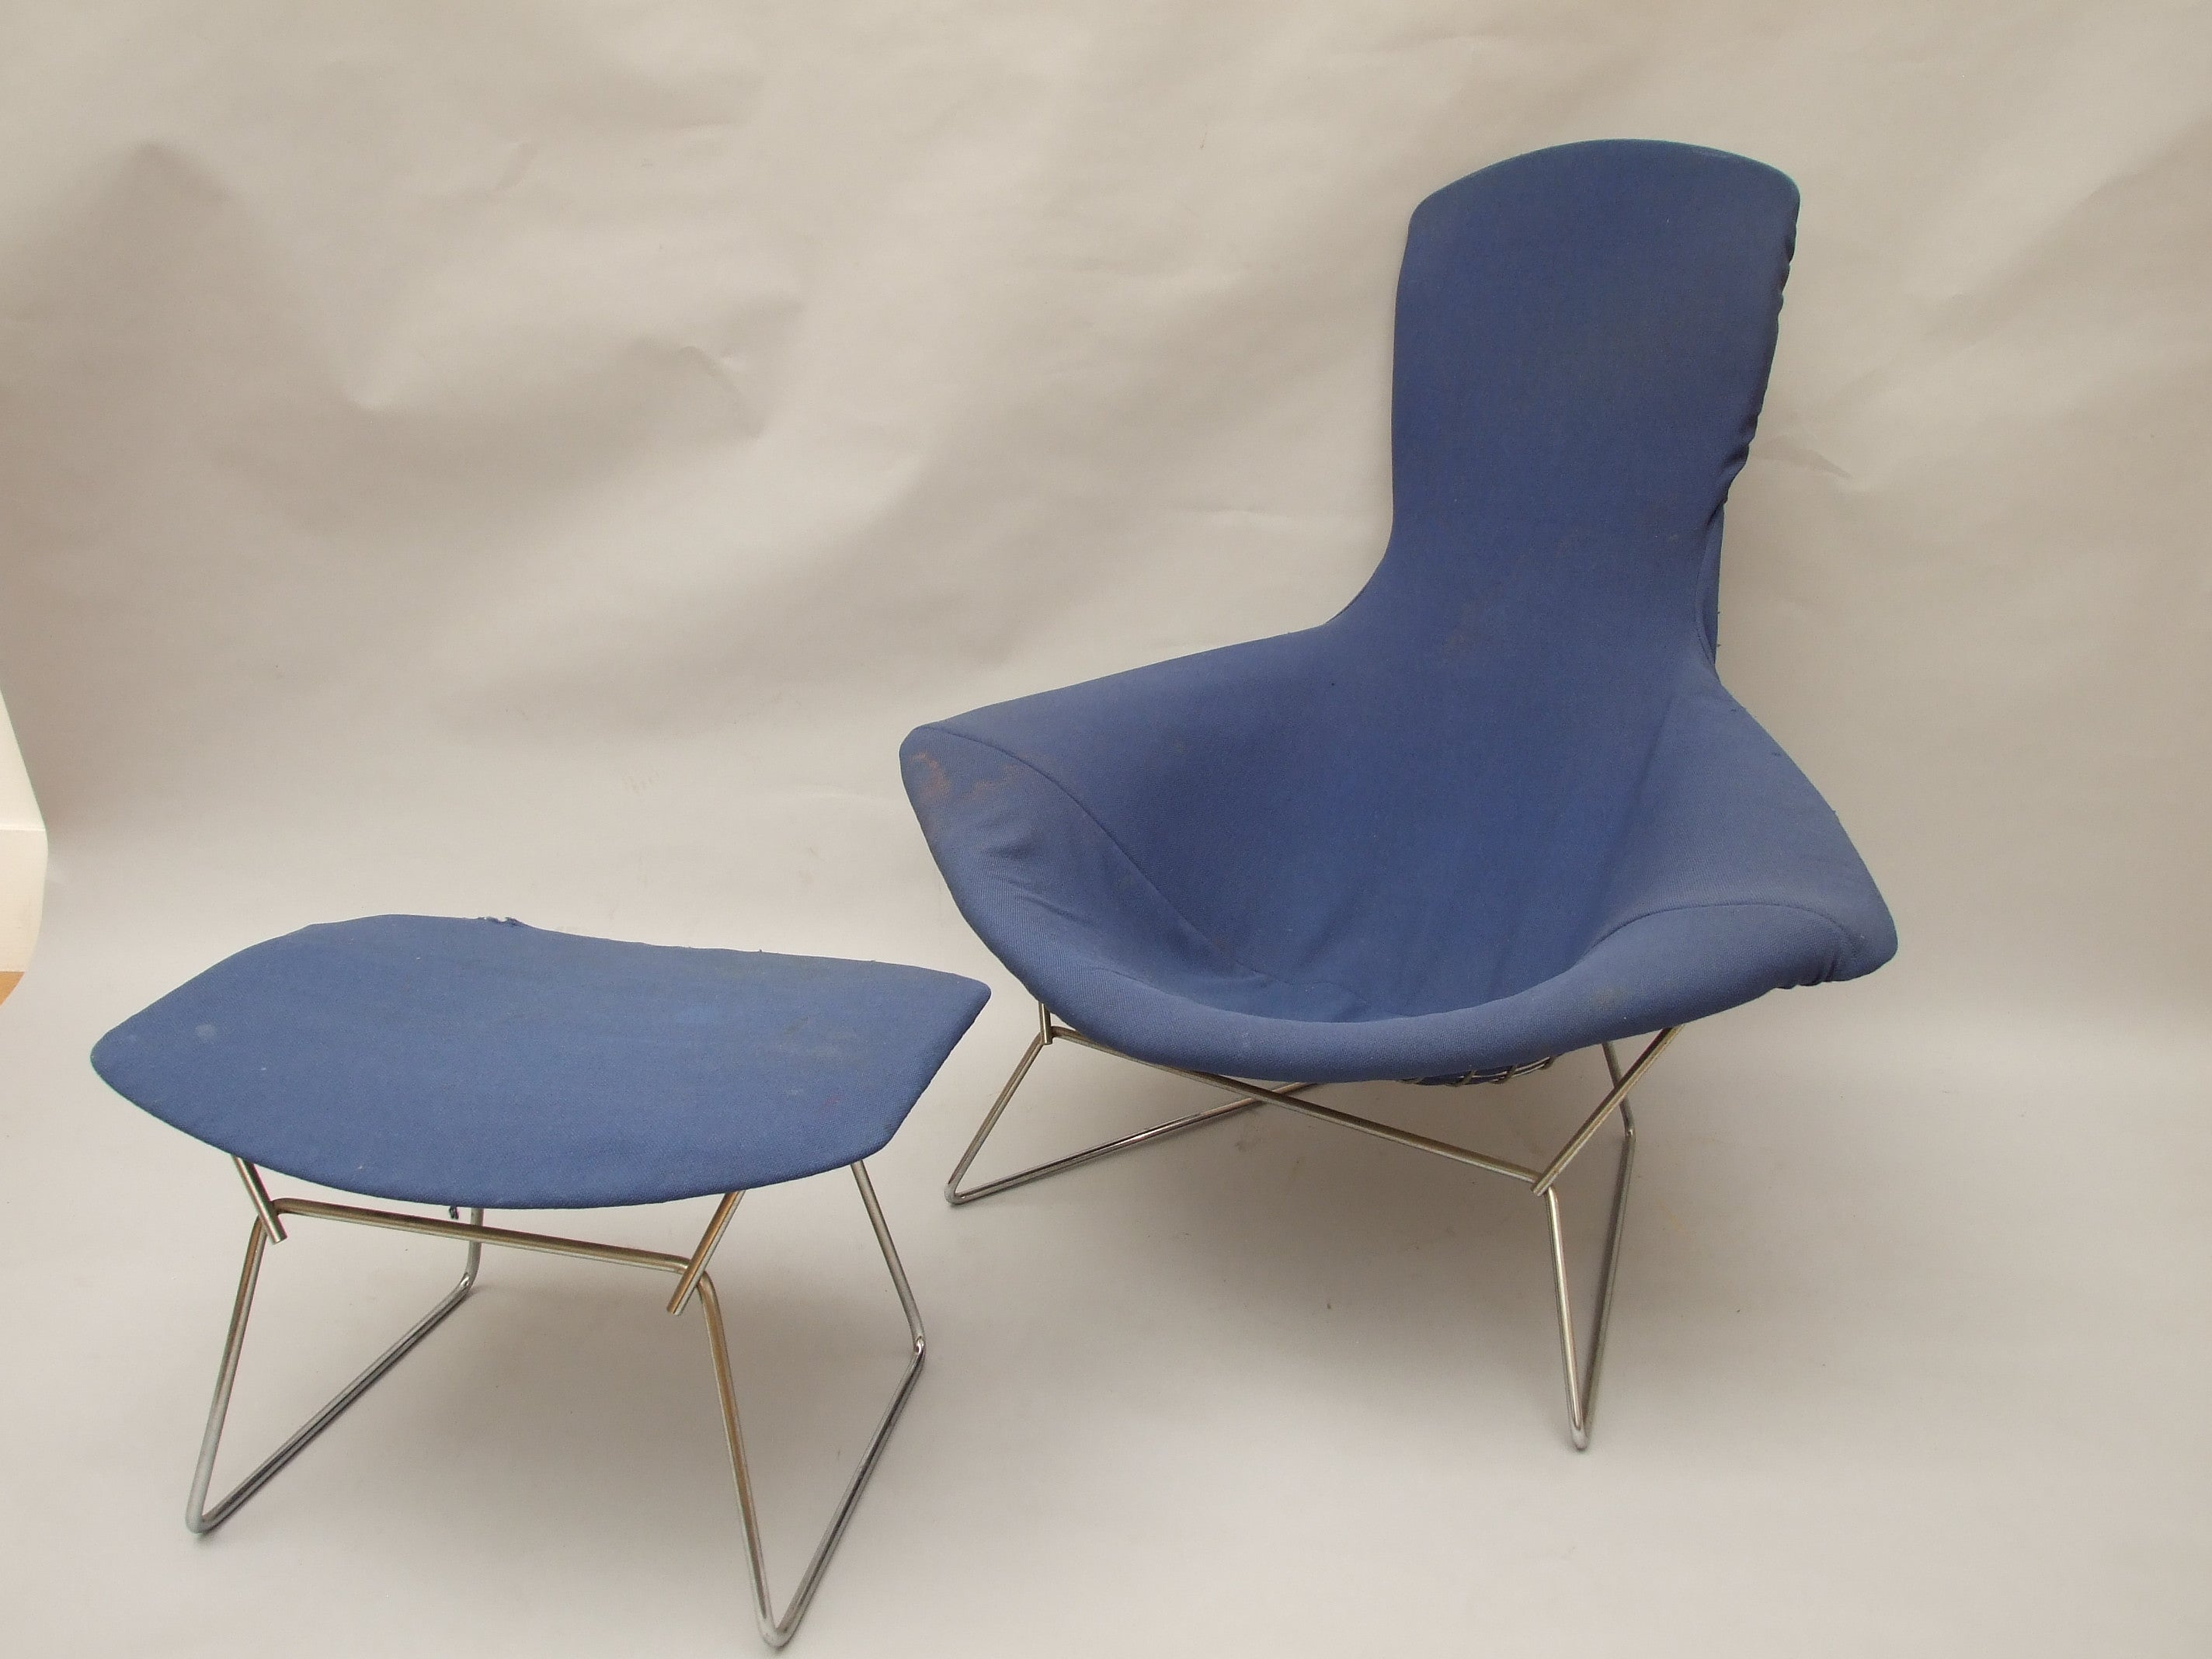 Harry Bertoia Bird chair and stool The Millinery Works